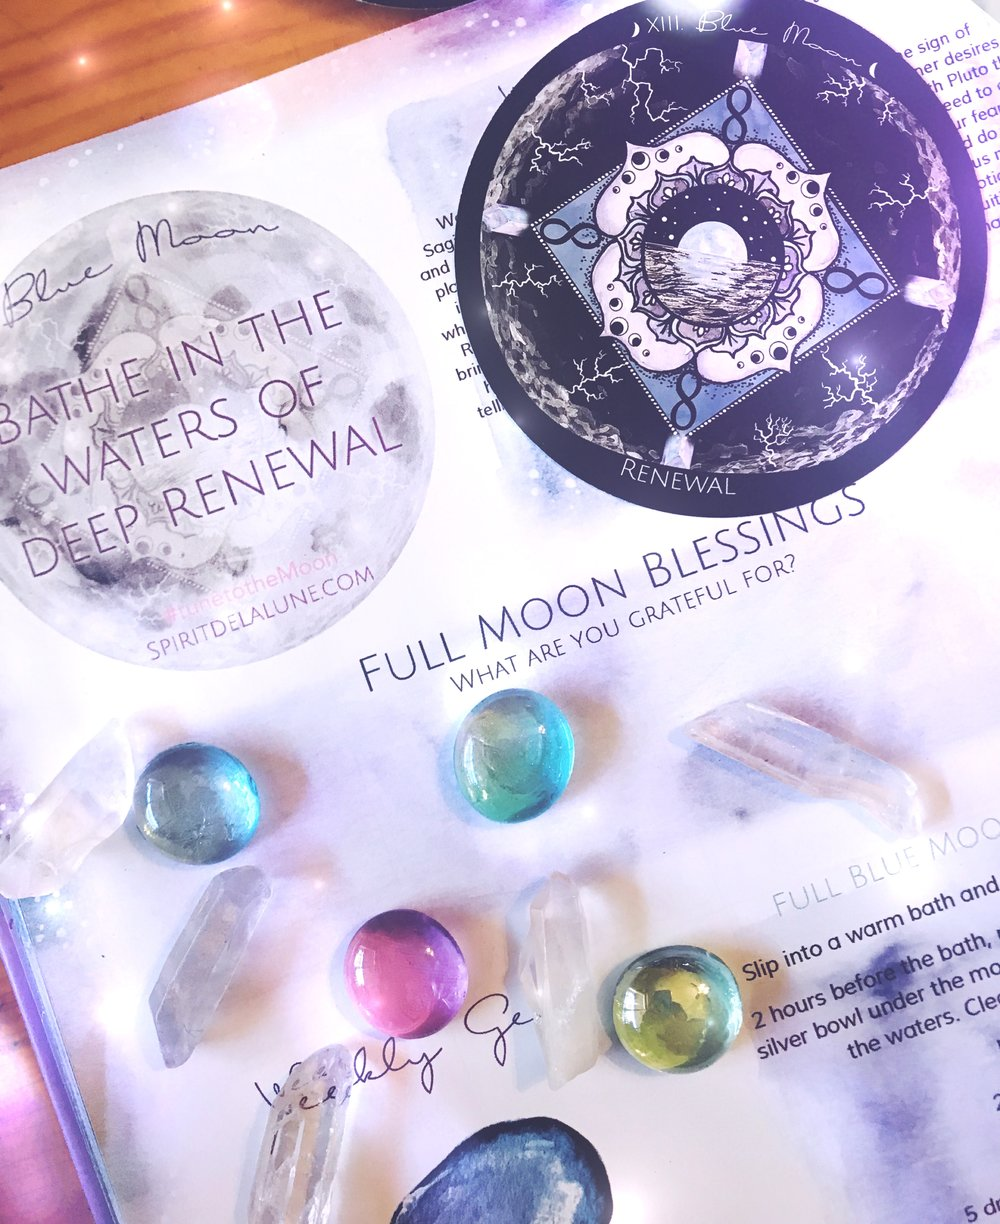 Full Blue Moon Meditation and Shower Ritual for Renewal